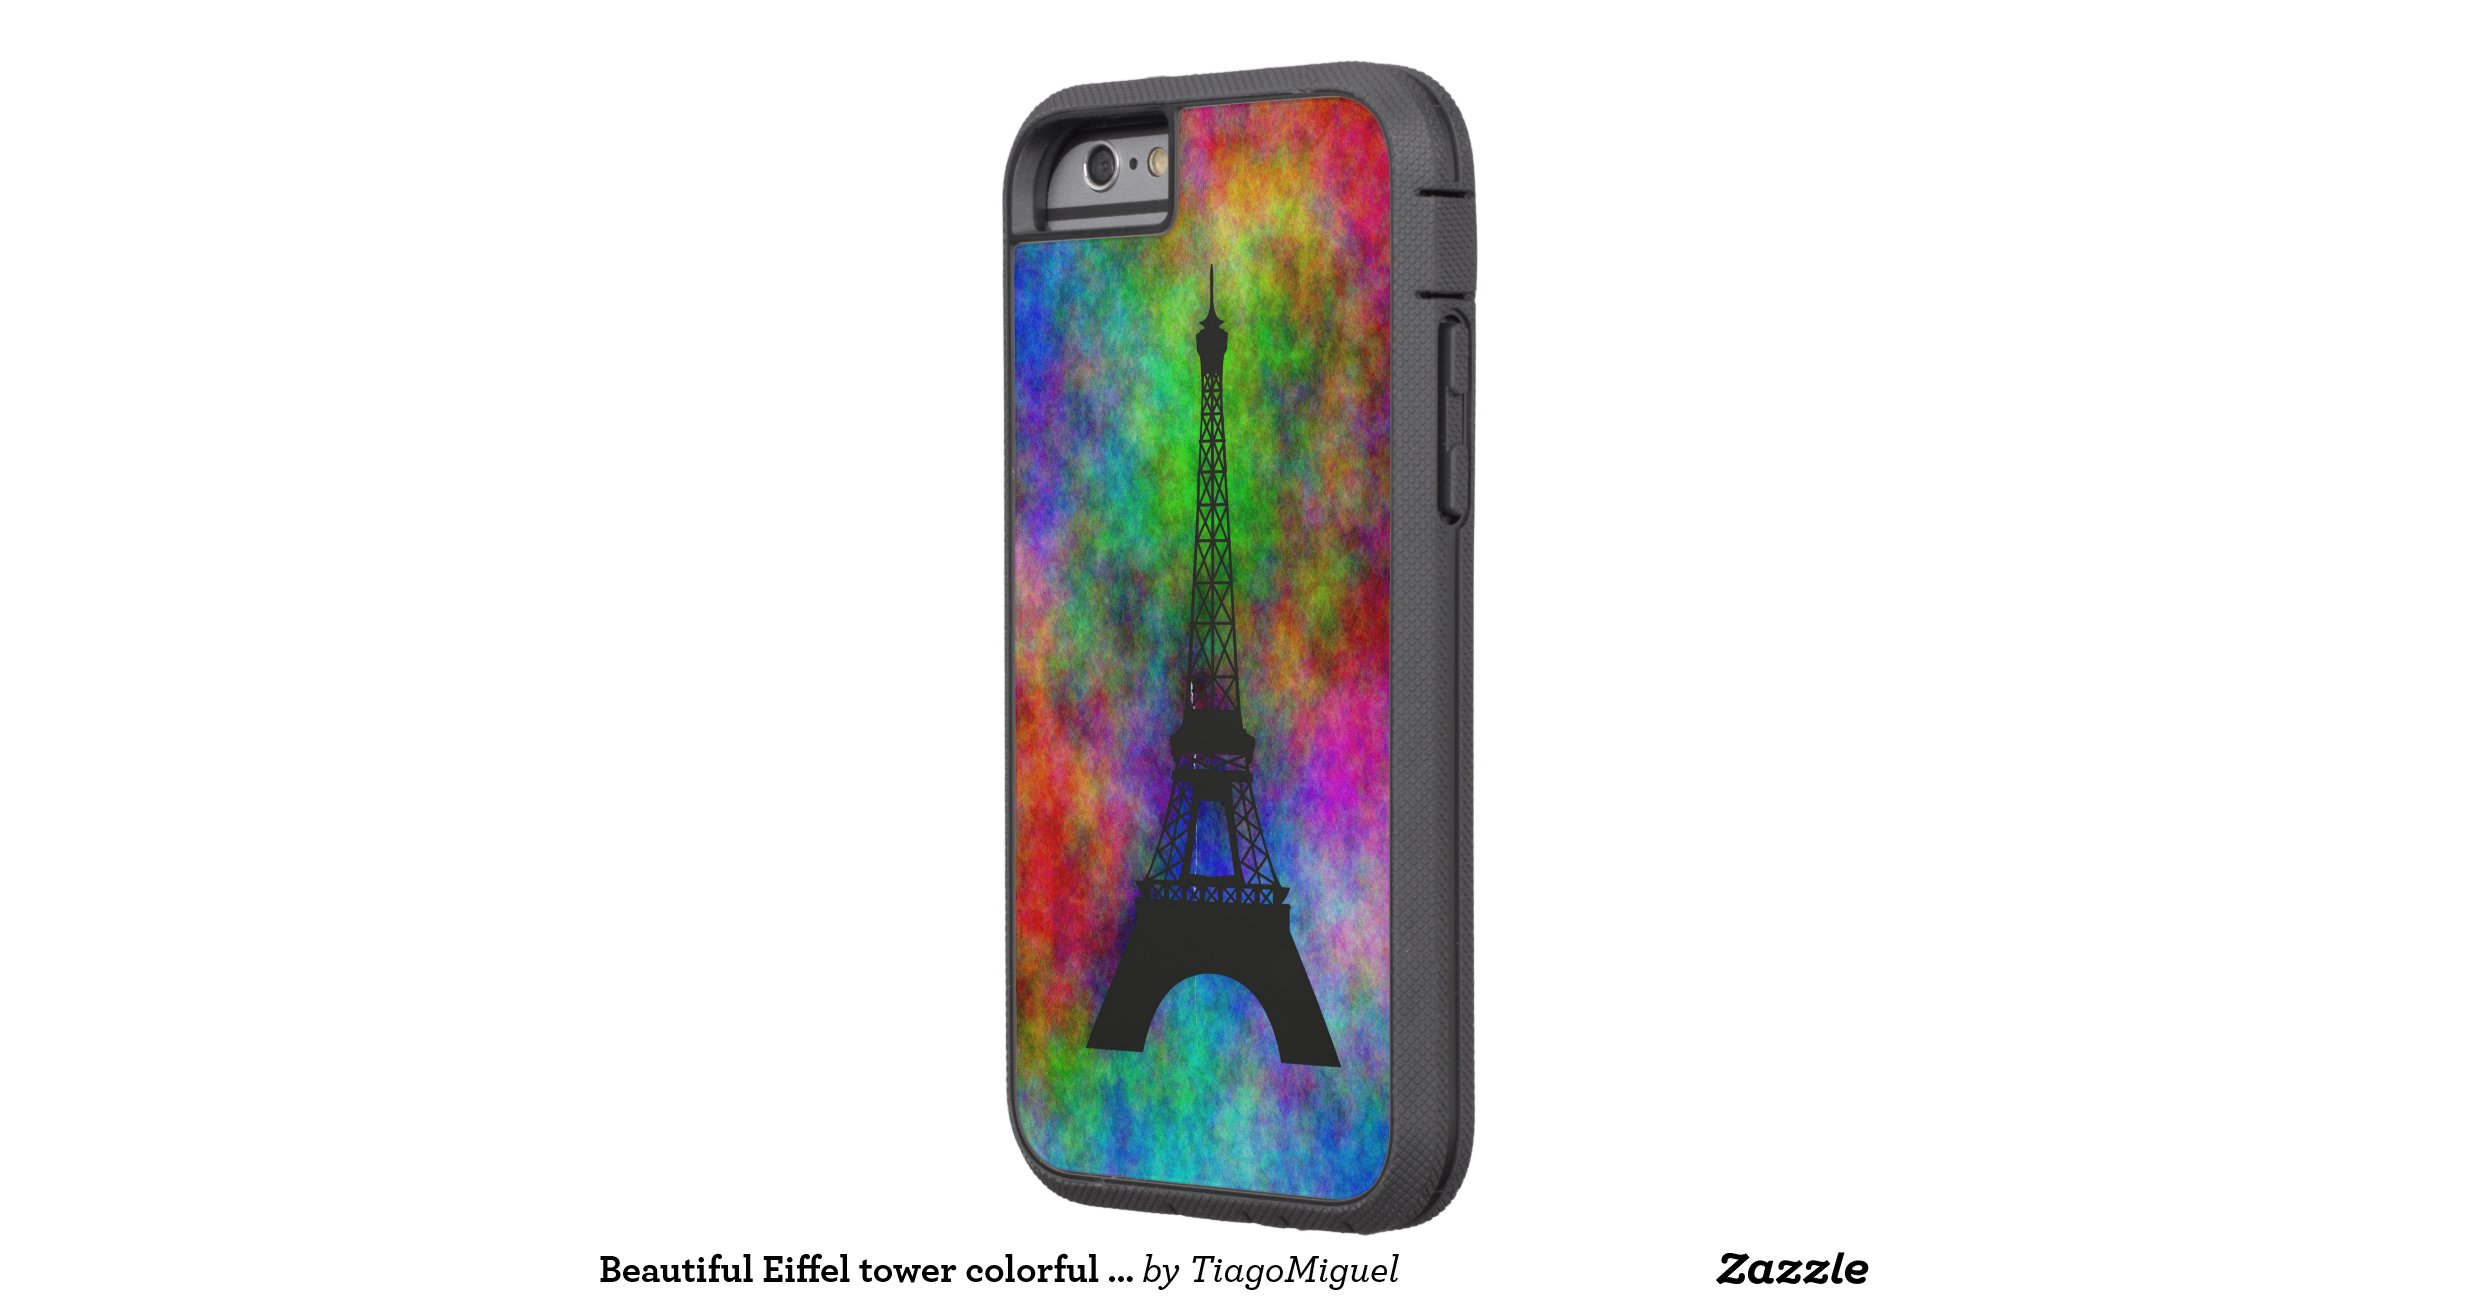 Eiffel Tower Iphone S Case